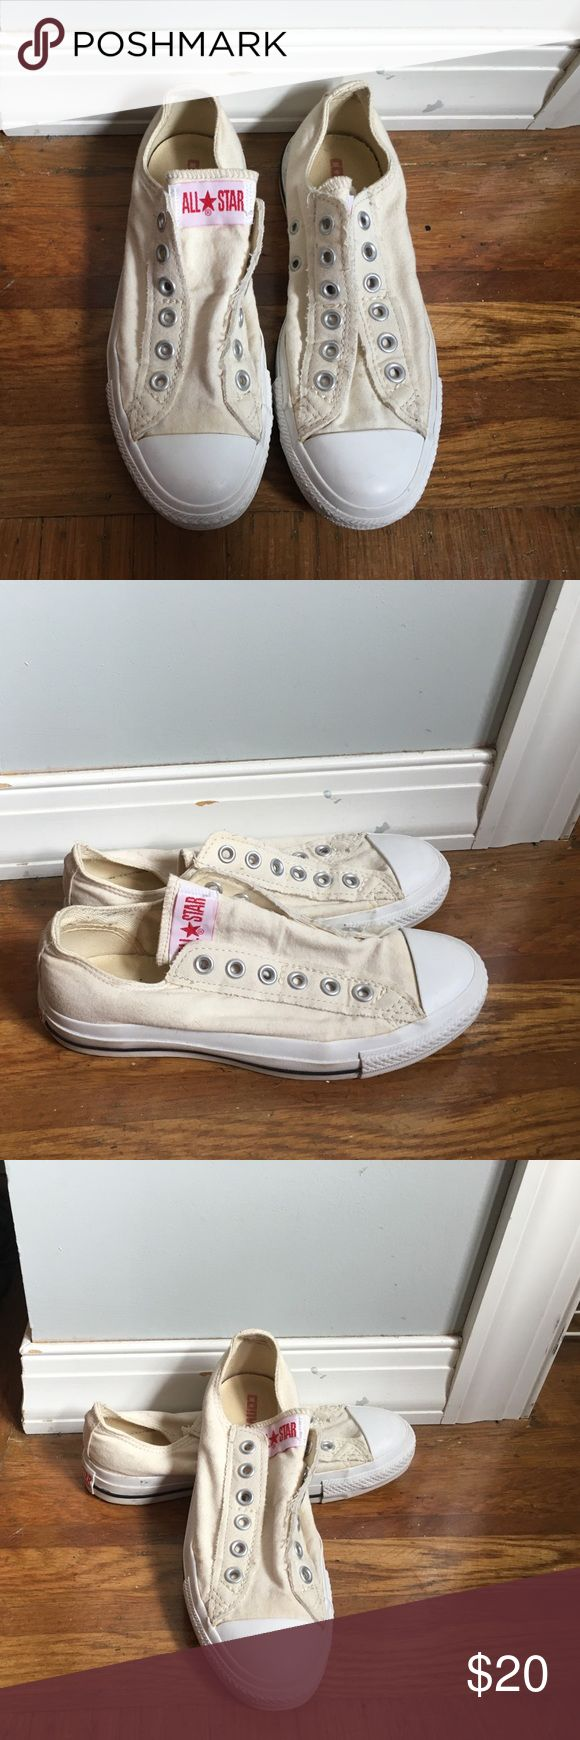 Converse Slip On Chuck Taylors - only worn once!!! Only worn once, these Chucks are super comfortable and perfect for any season. Converse Shoes Sneakers